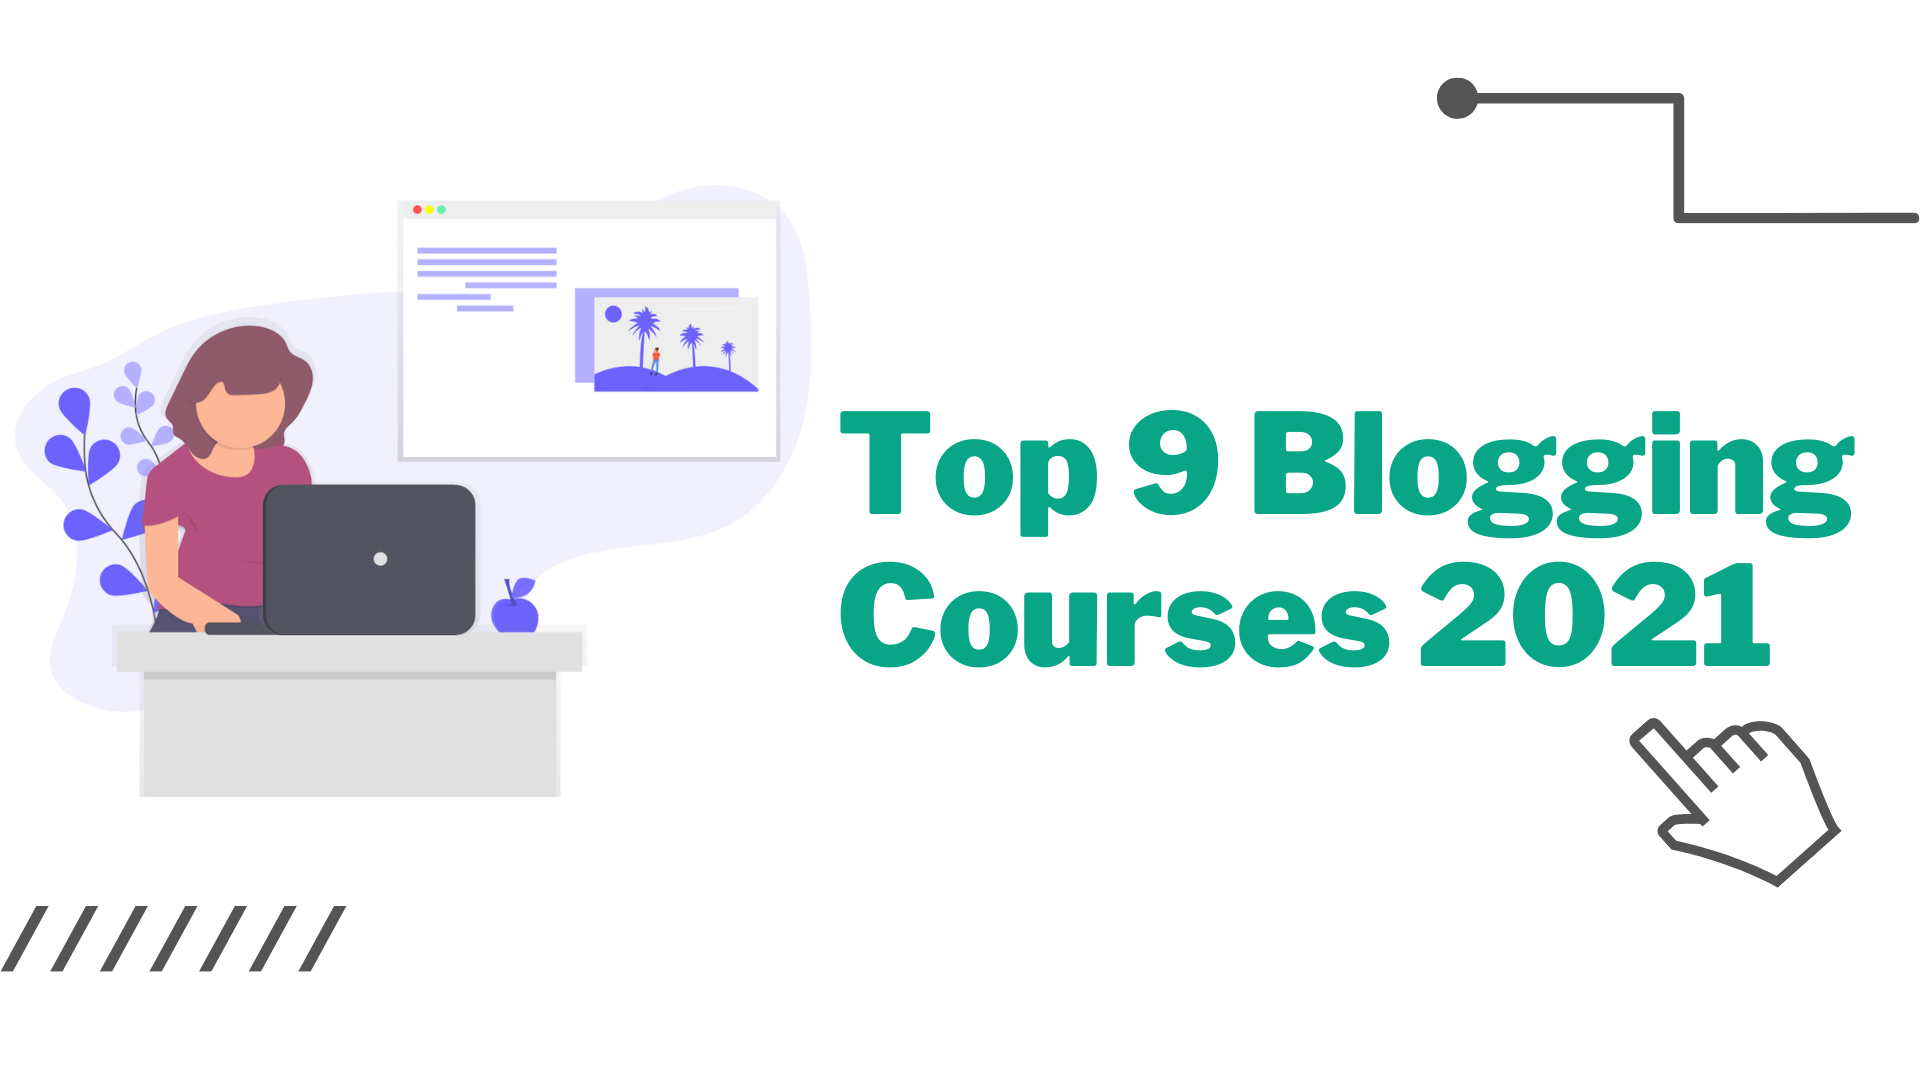 Top 9 Blogging Courses in 2021